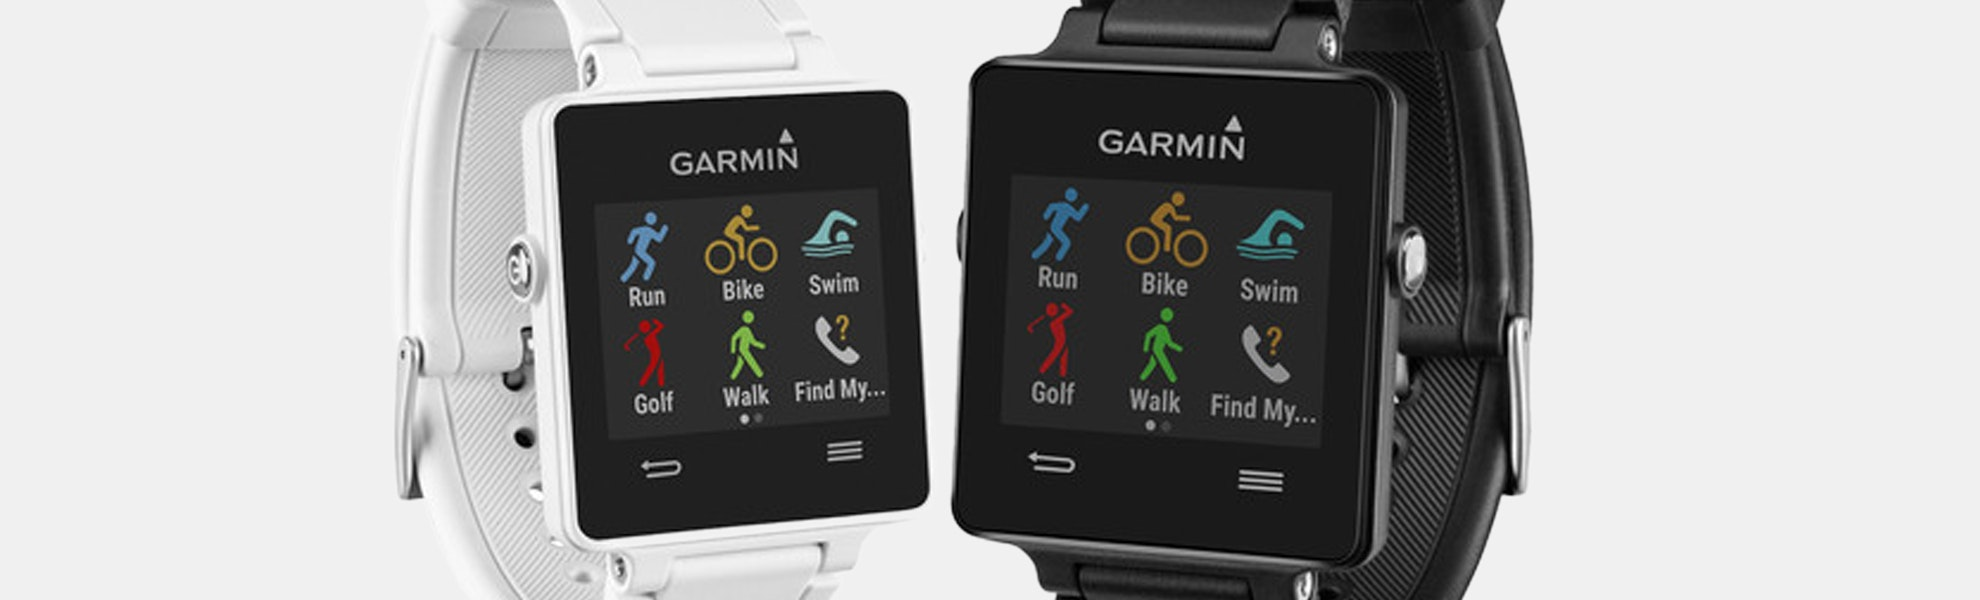 Garmin Vivoactive Smartwatch Bundle